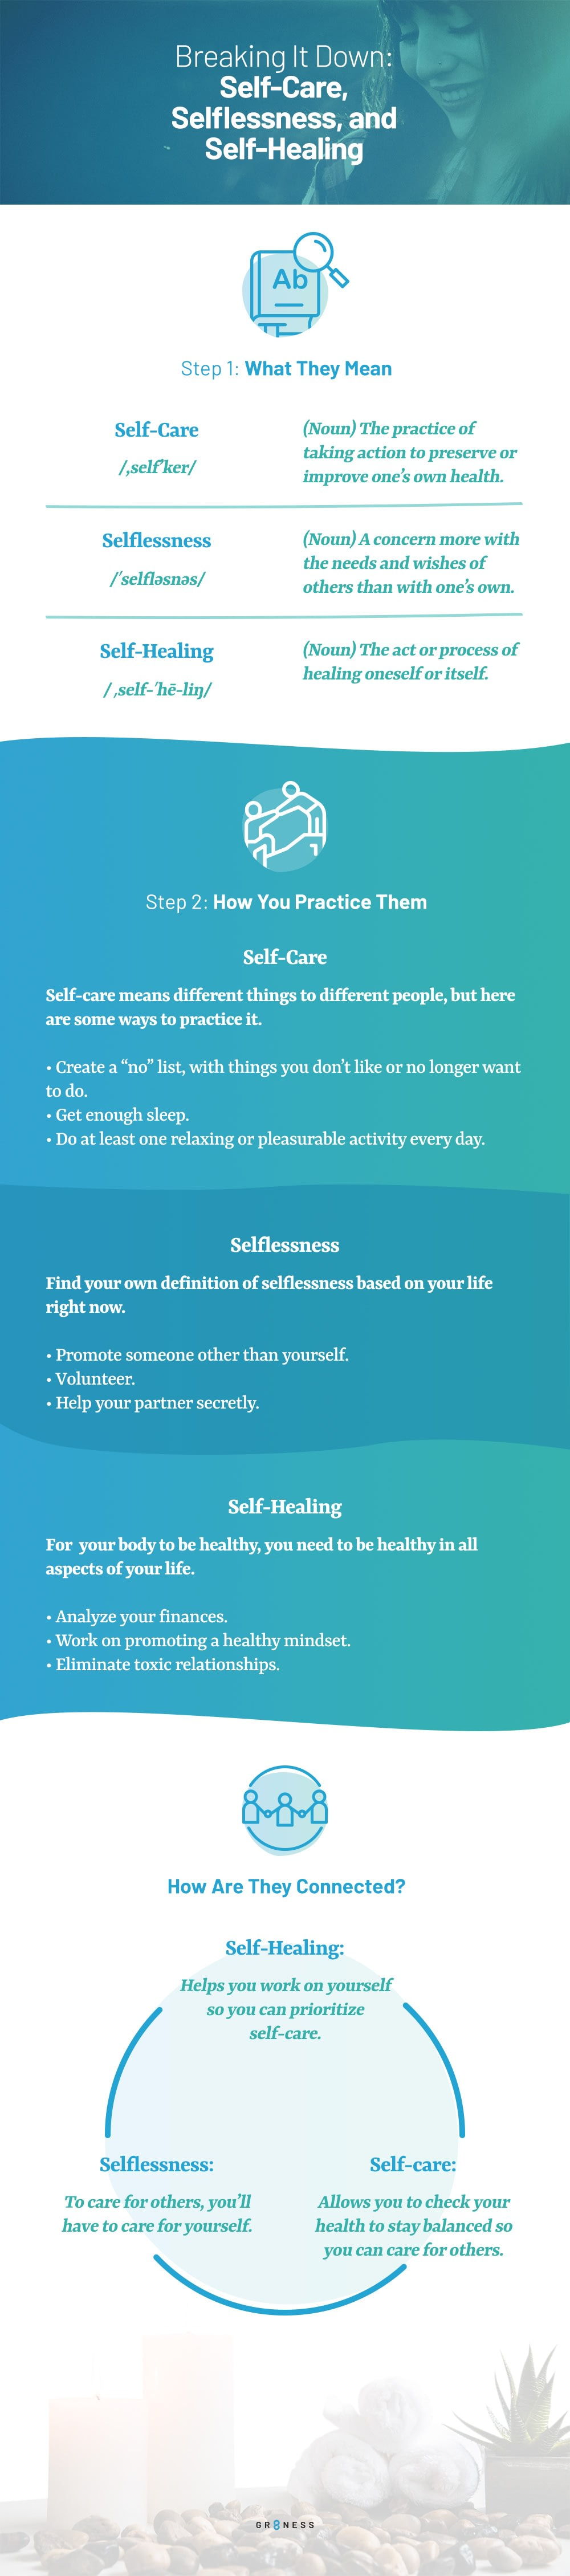 An infographic breaking down self-care, selflessness and self-healing